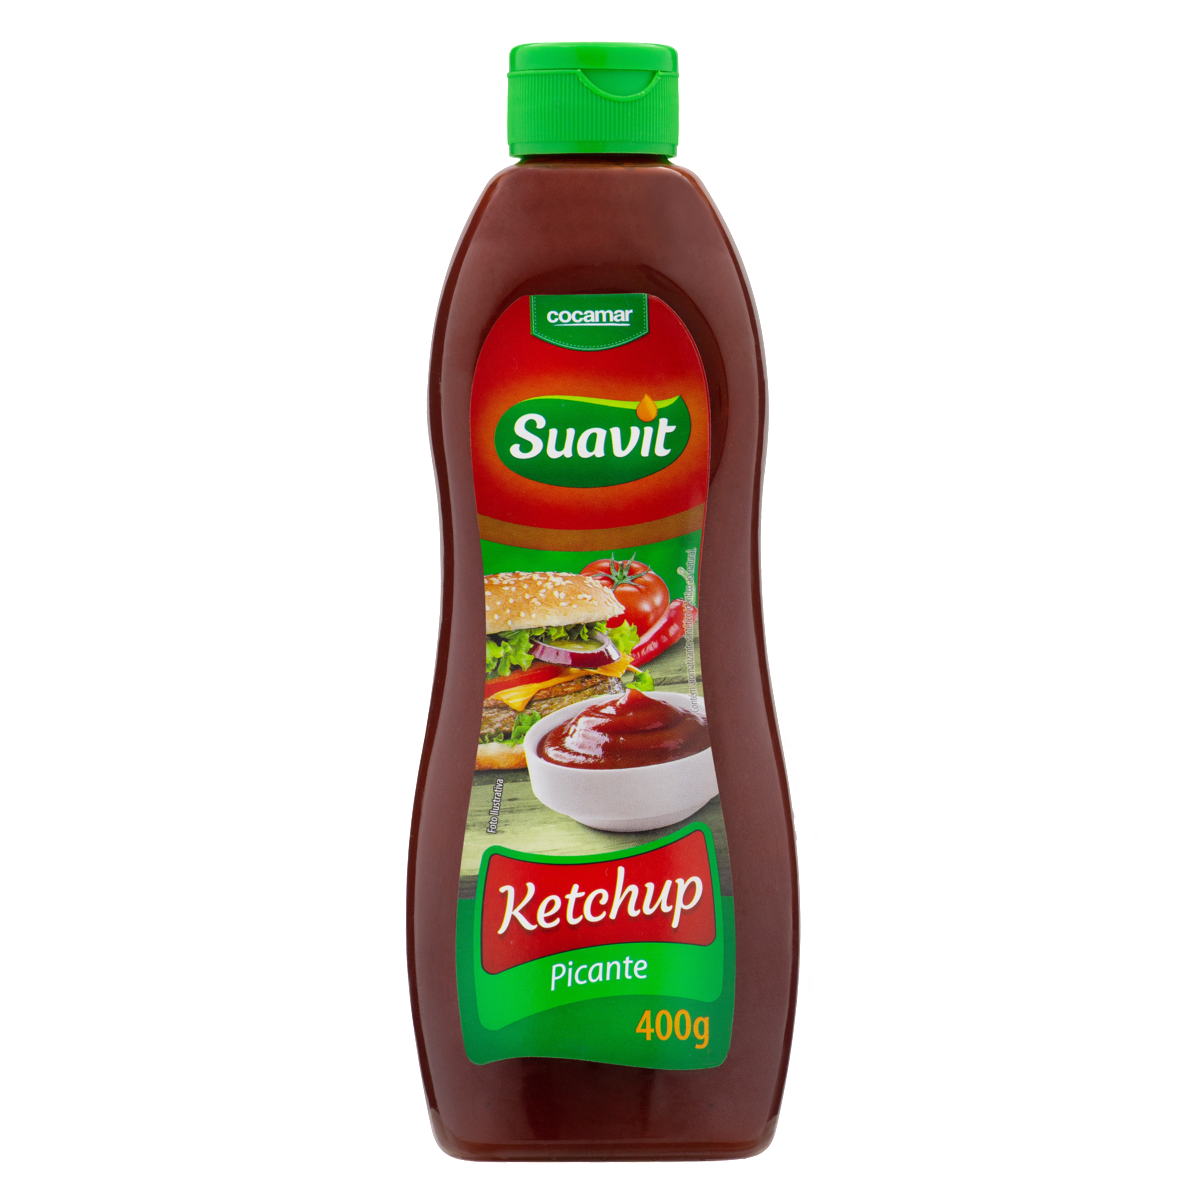 7897001040387 - KETCHUP PICANTE SUAVIT SQUEEZE 400G